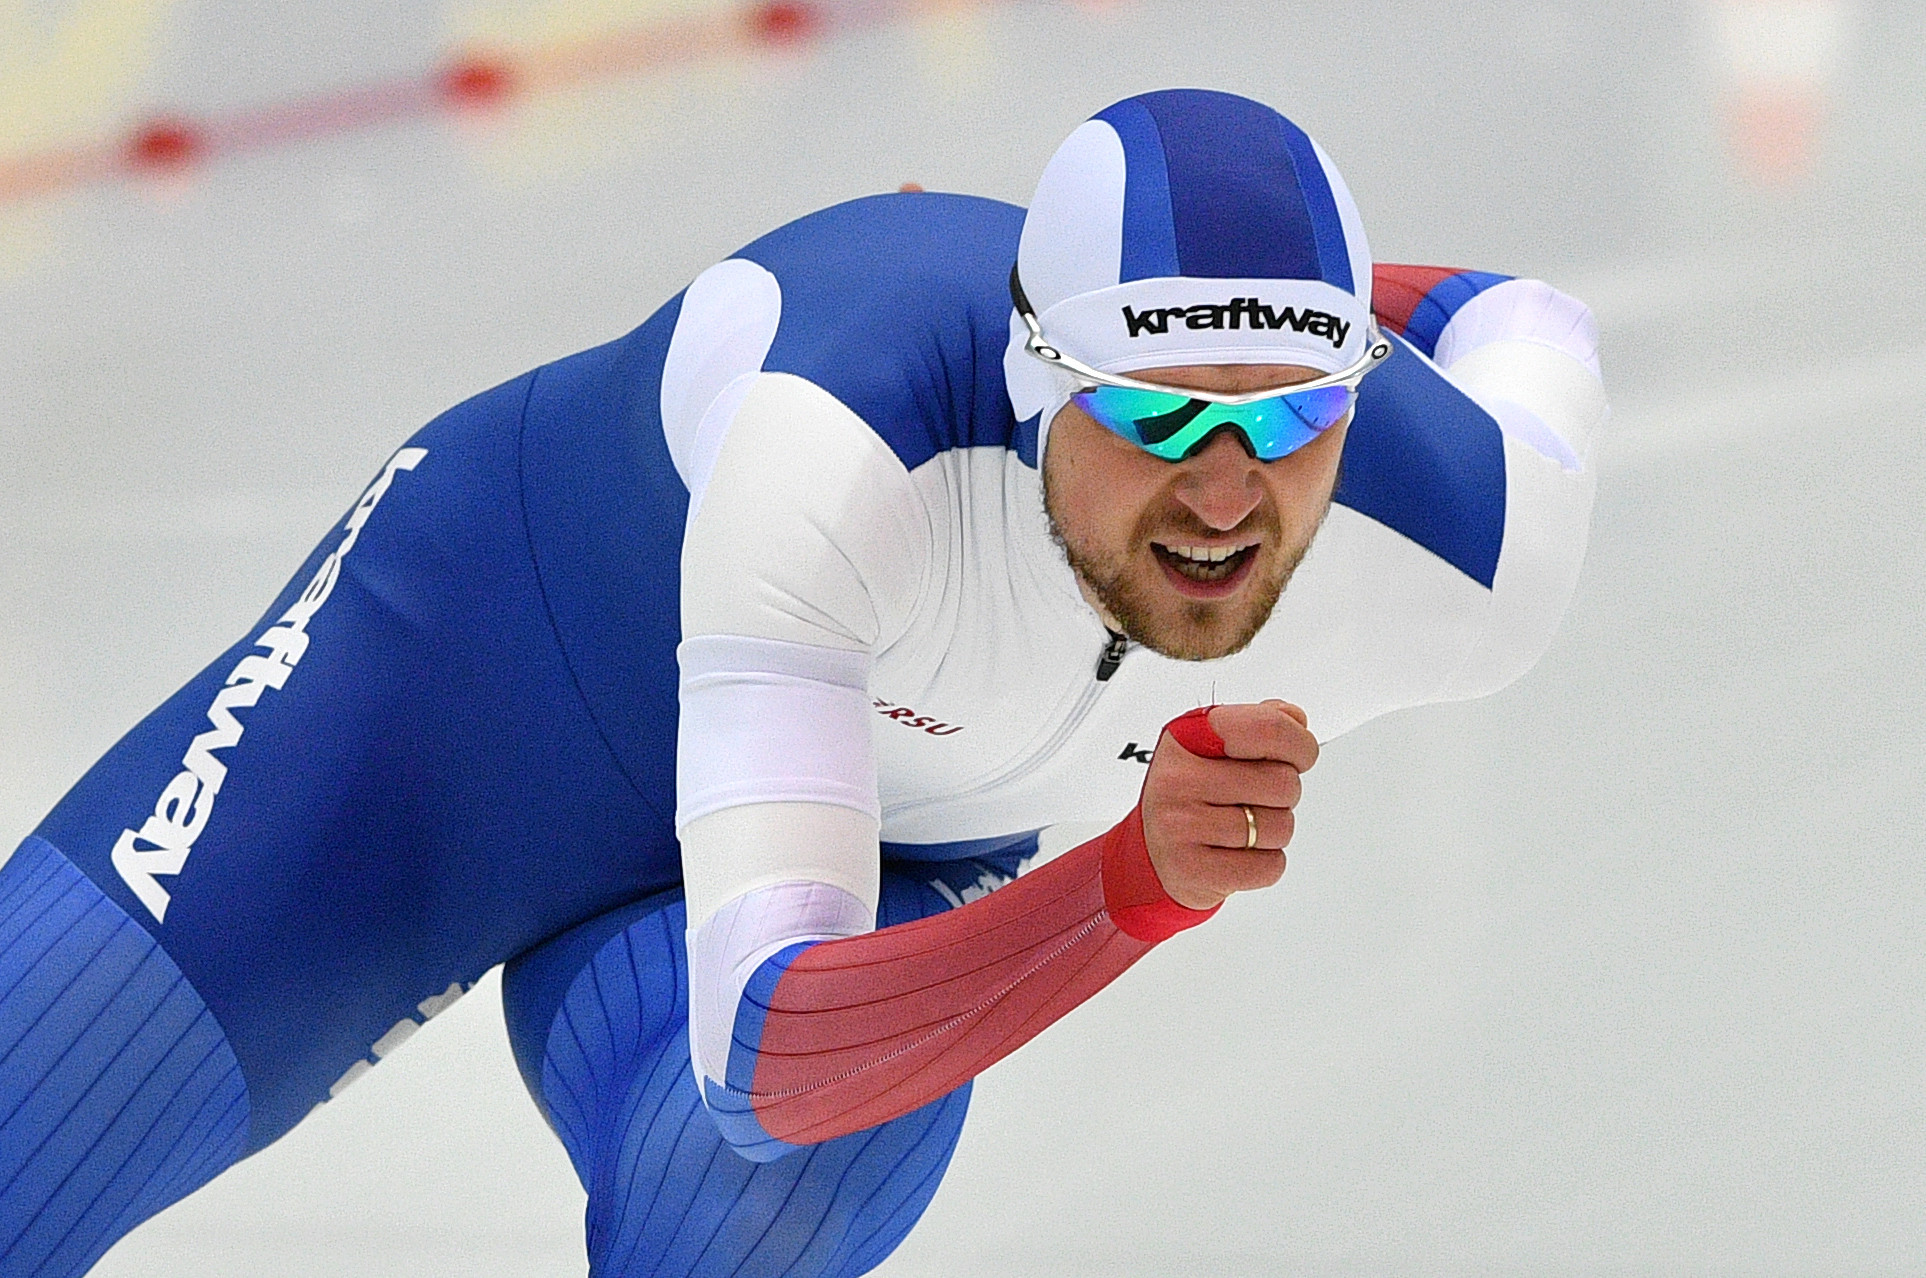 Denis Yuskov was among the gold medal winners as competition began ©Getty Images